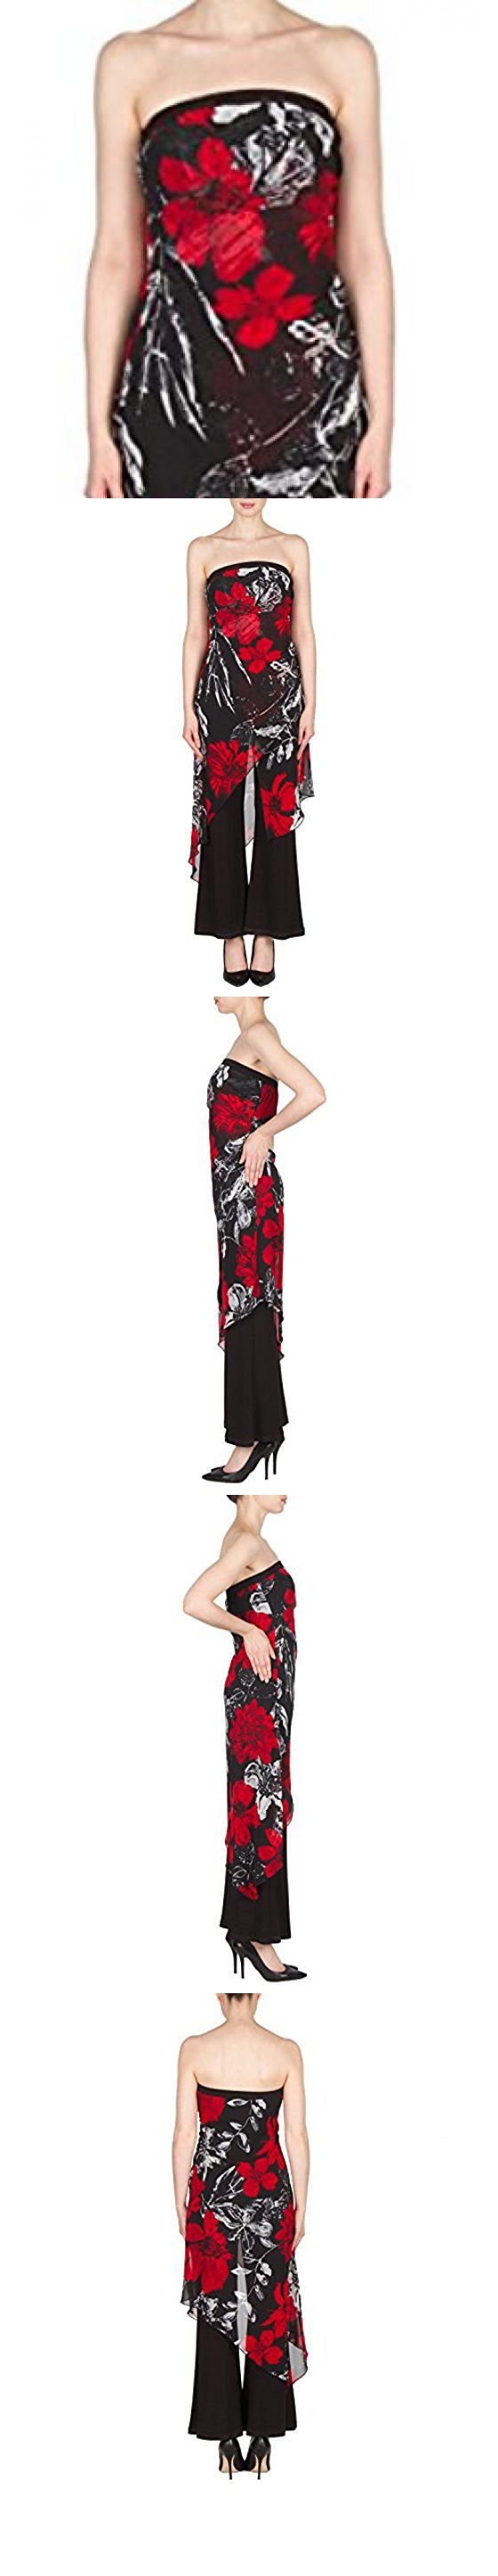 008004295daf Joseph Ribkoff Mock 2-Piece Strapless Jumpsuit with Floral Chiffon Overlay  Style 173620 - Size